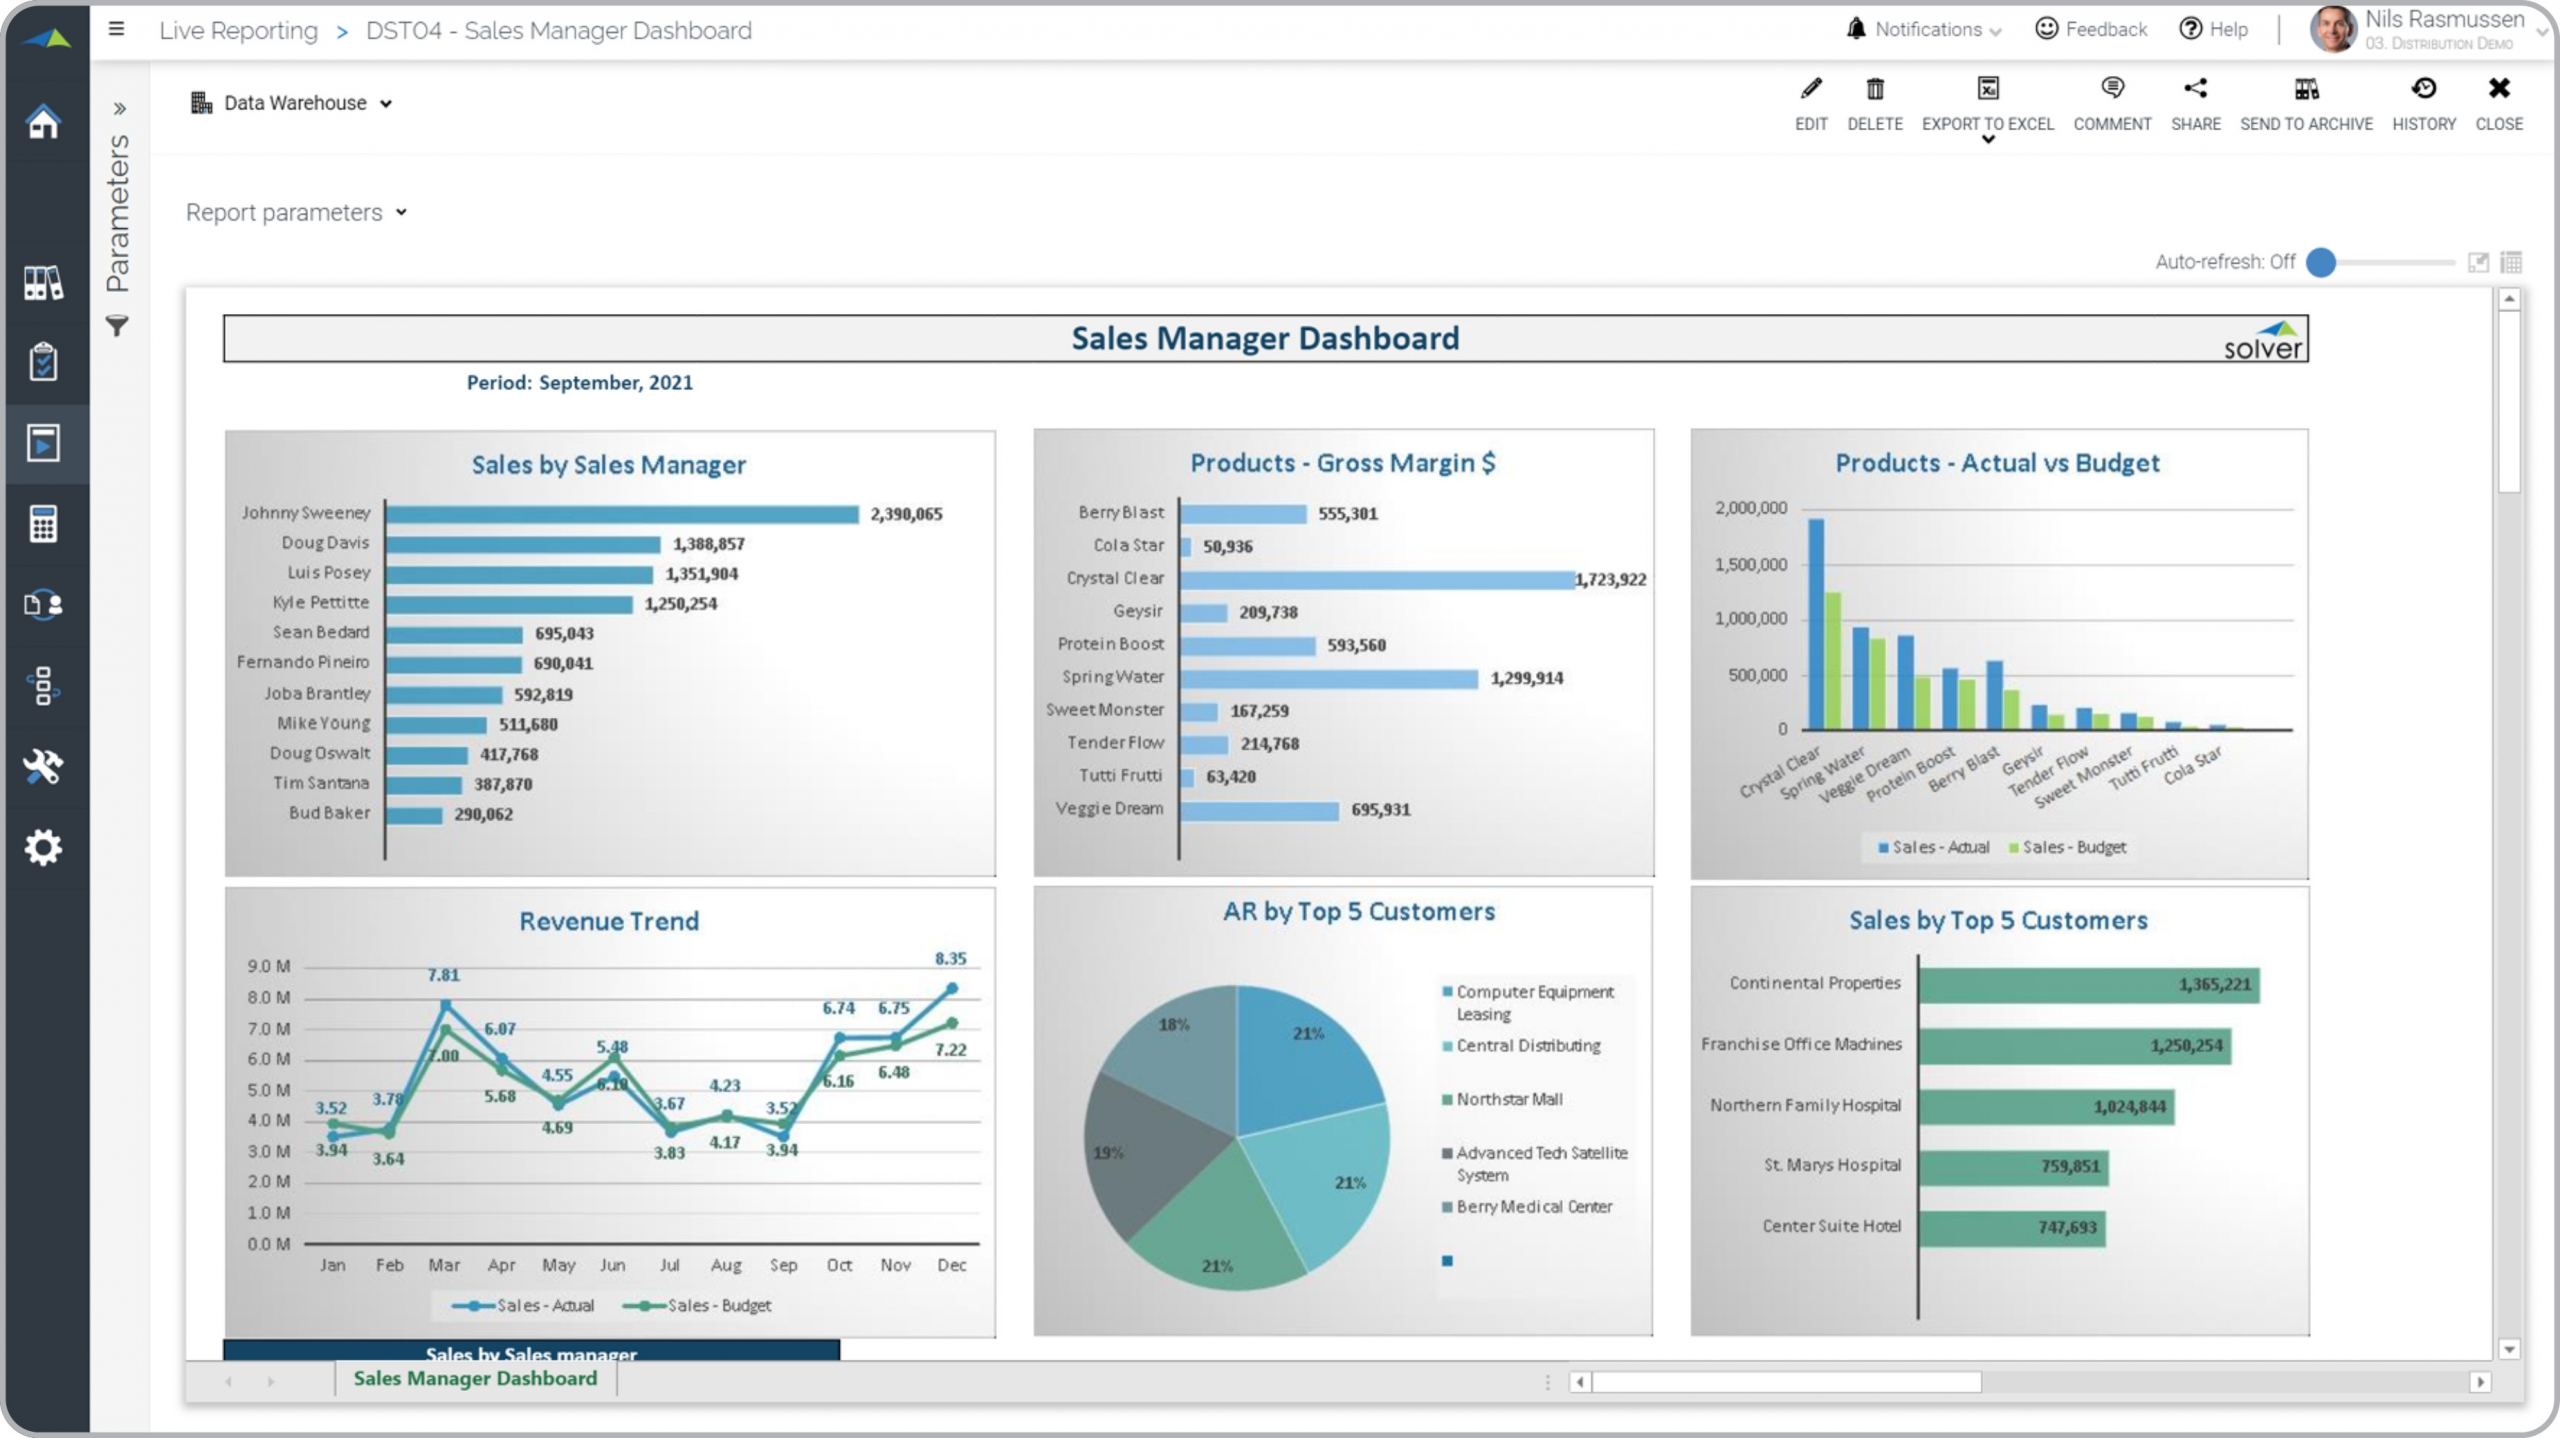 Example of a Sales Manager Dashboard for a Distribution Company